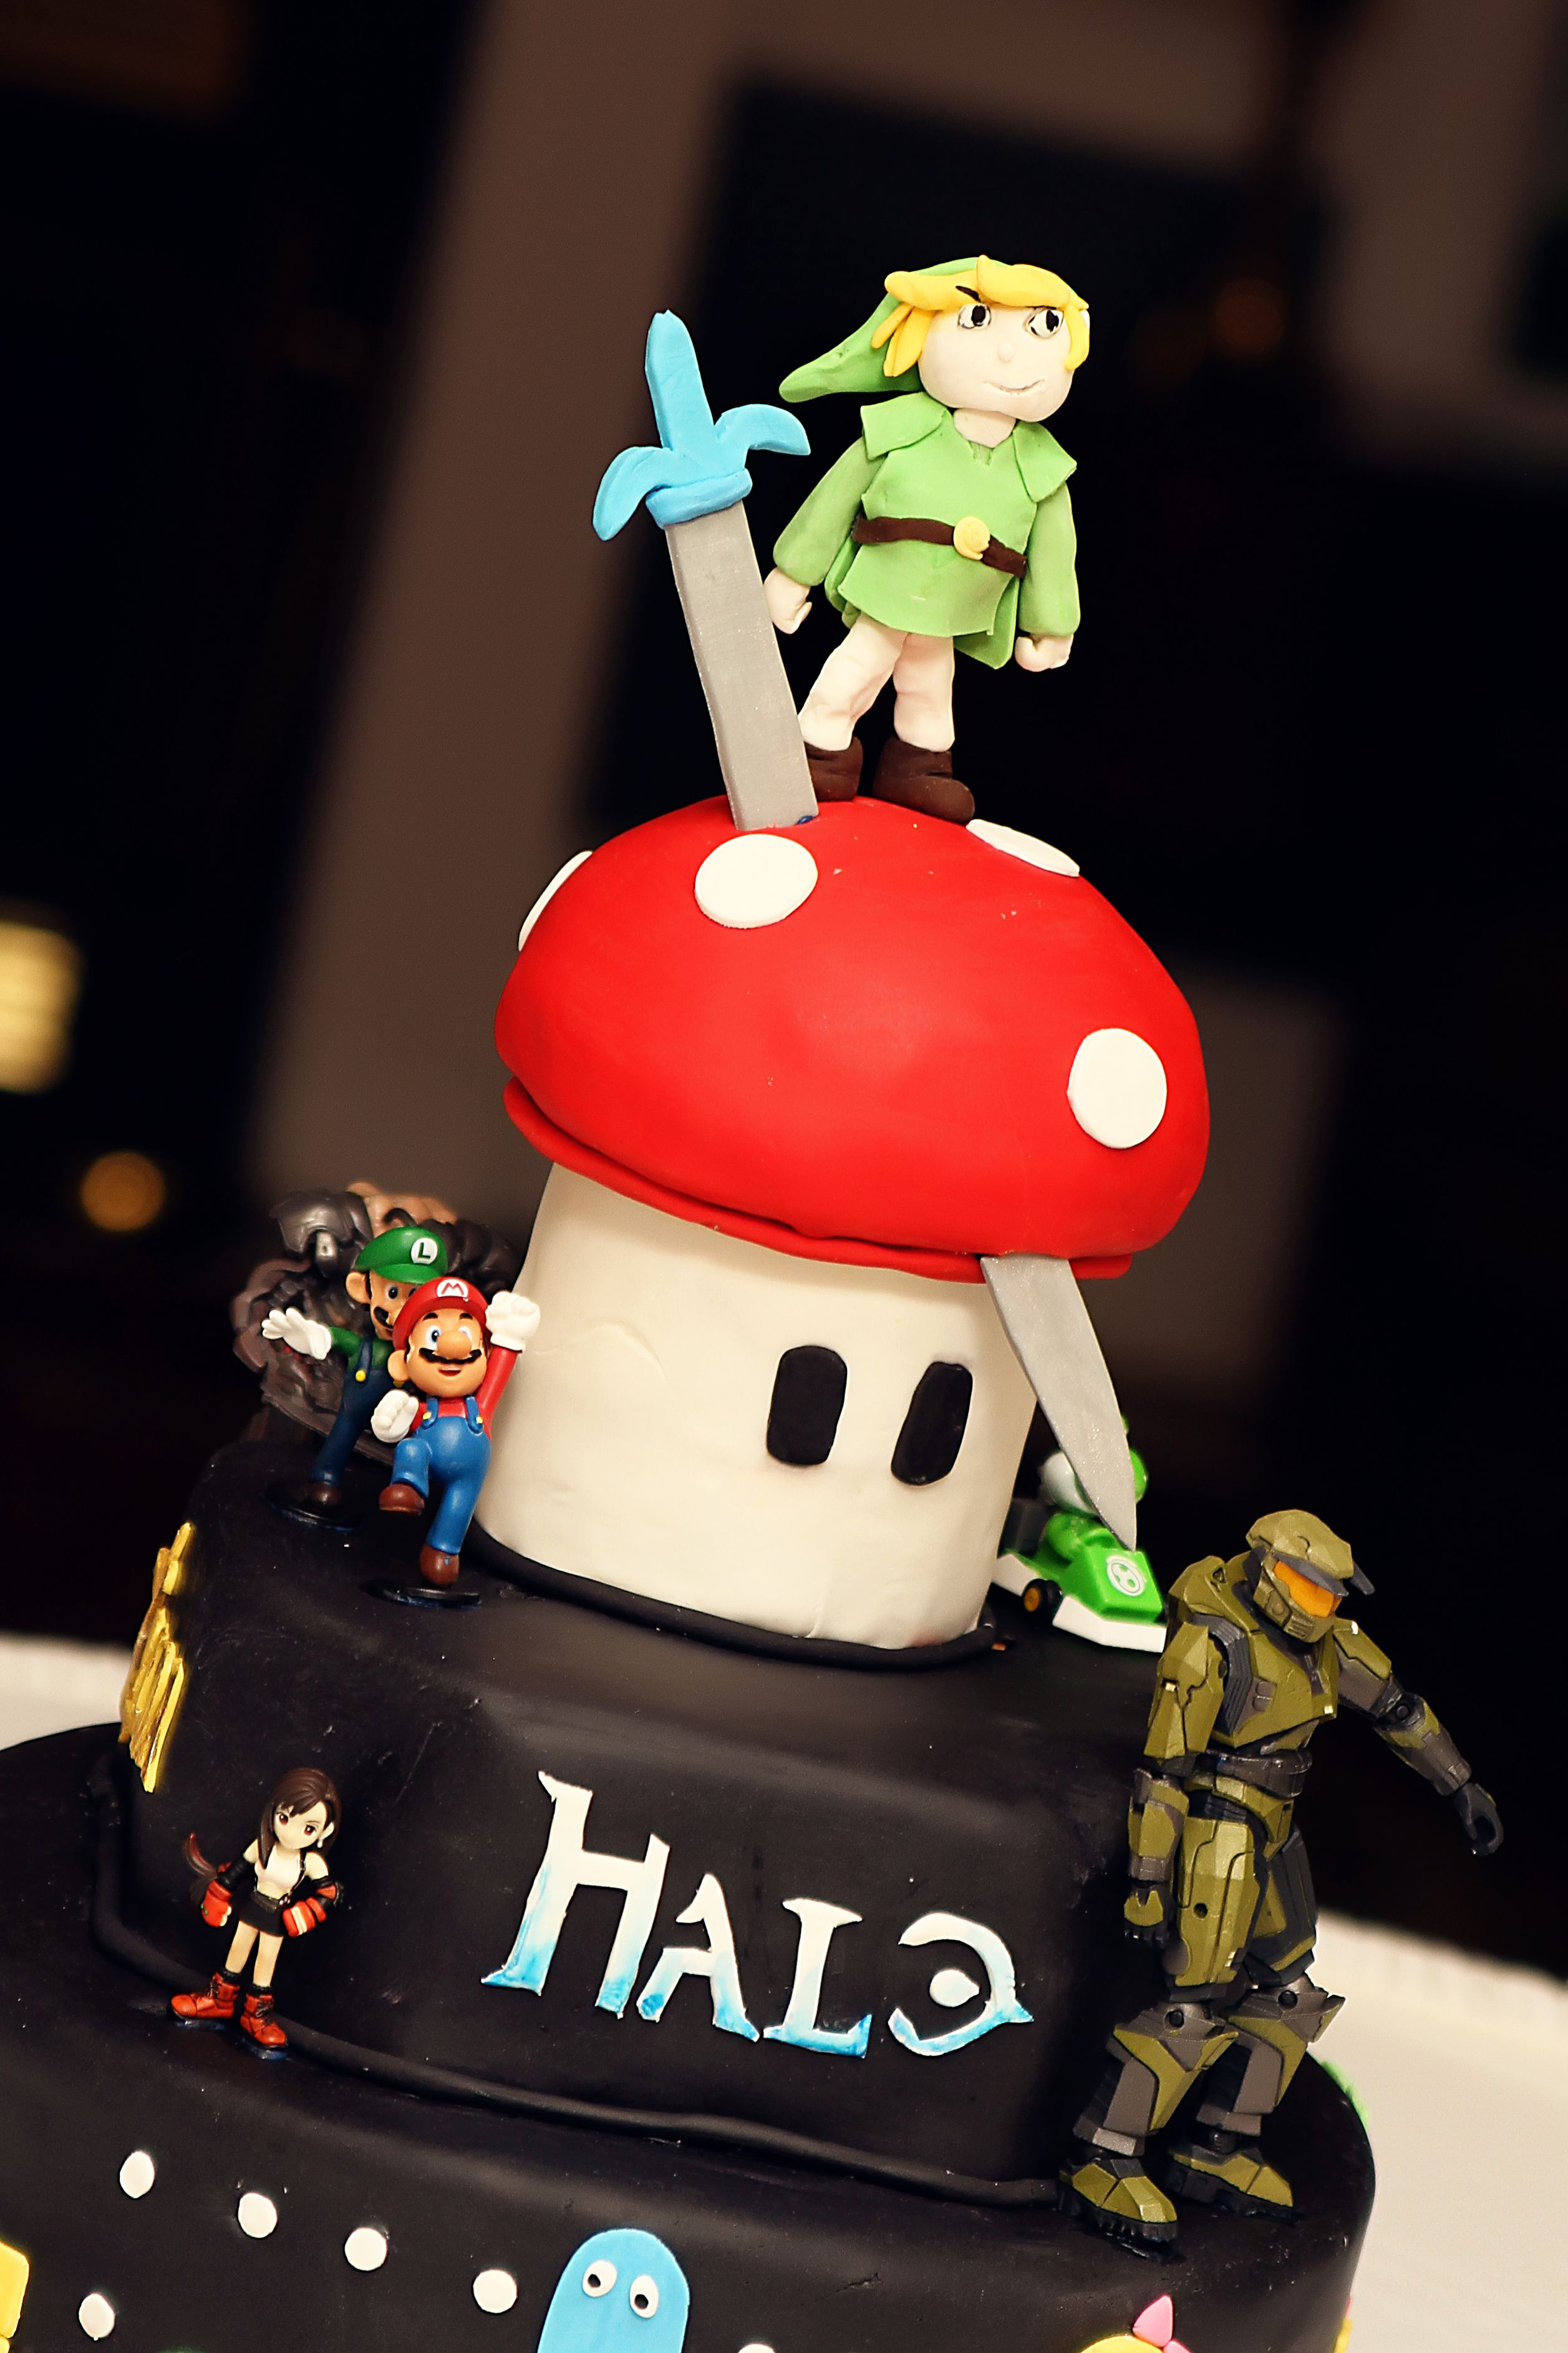 Azriel would love thismario legend of zelda and halo themed cake